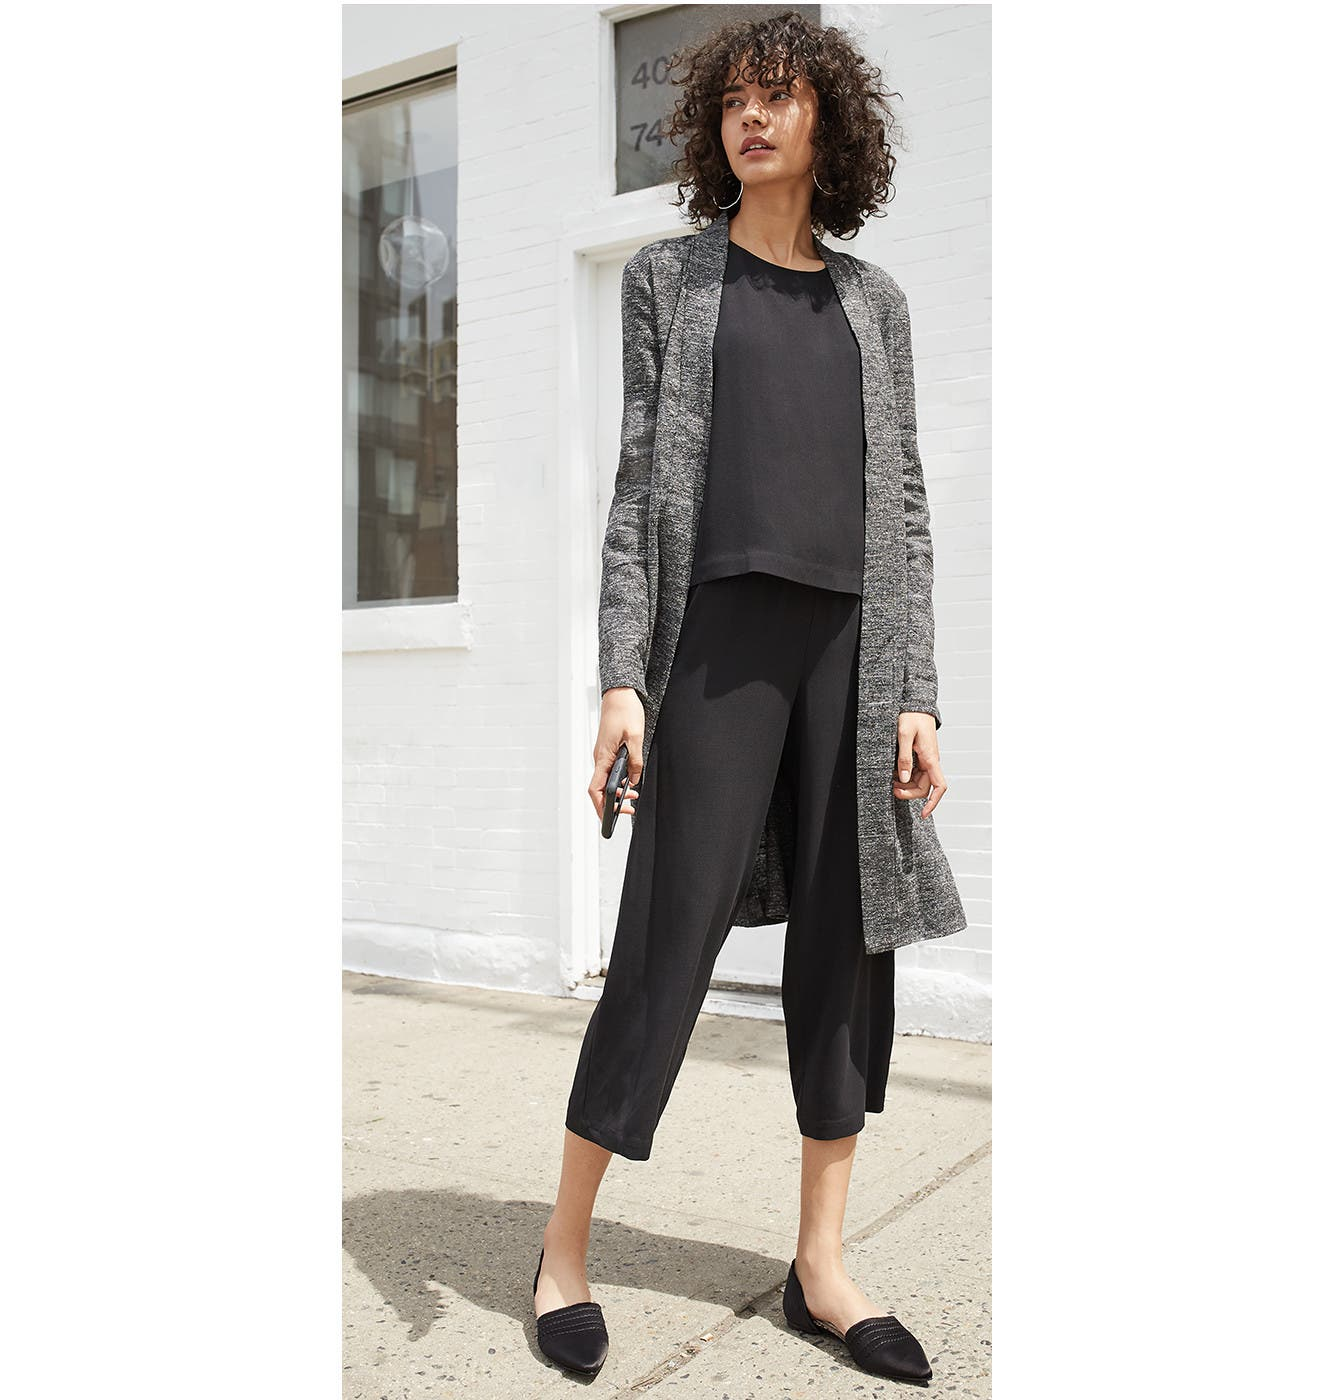 Effortless Eileen Fisher pieces to mix and layer.